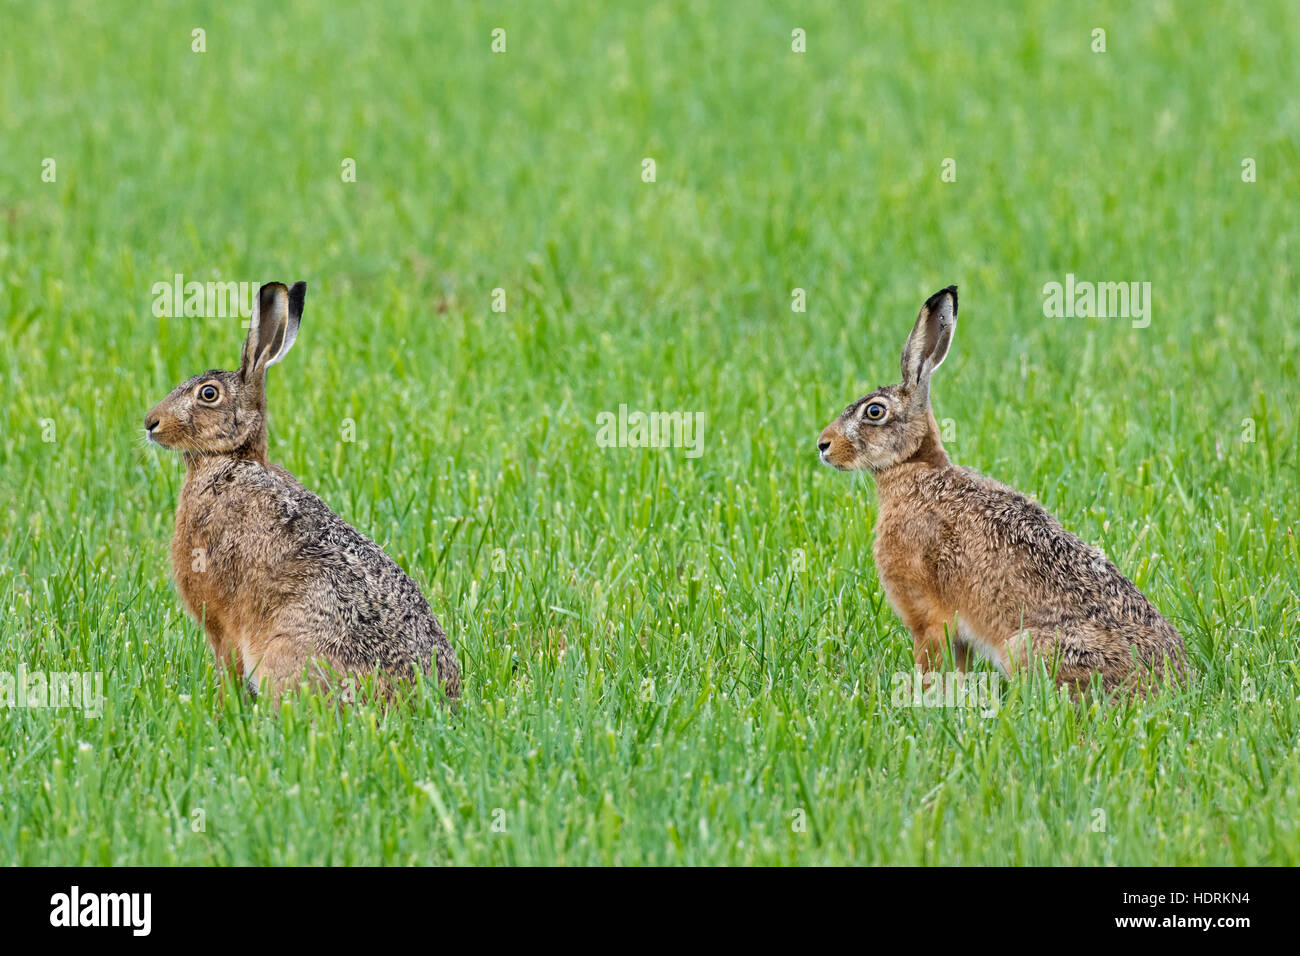 Two European brown hares (Lepus europaeus) sitting in grassland - Stock Image